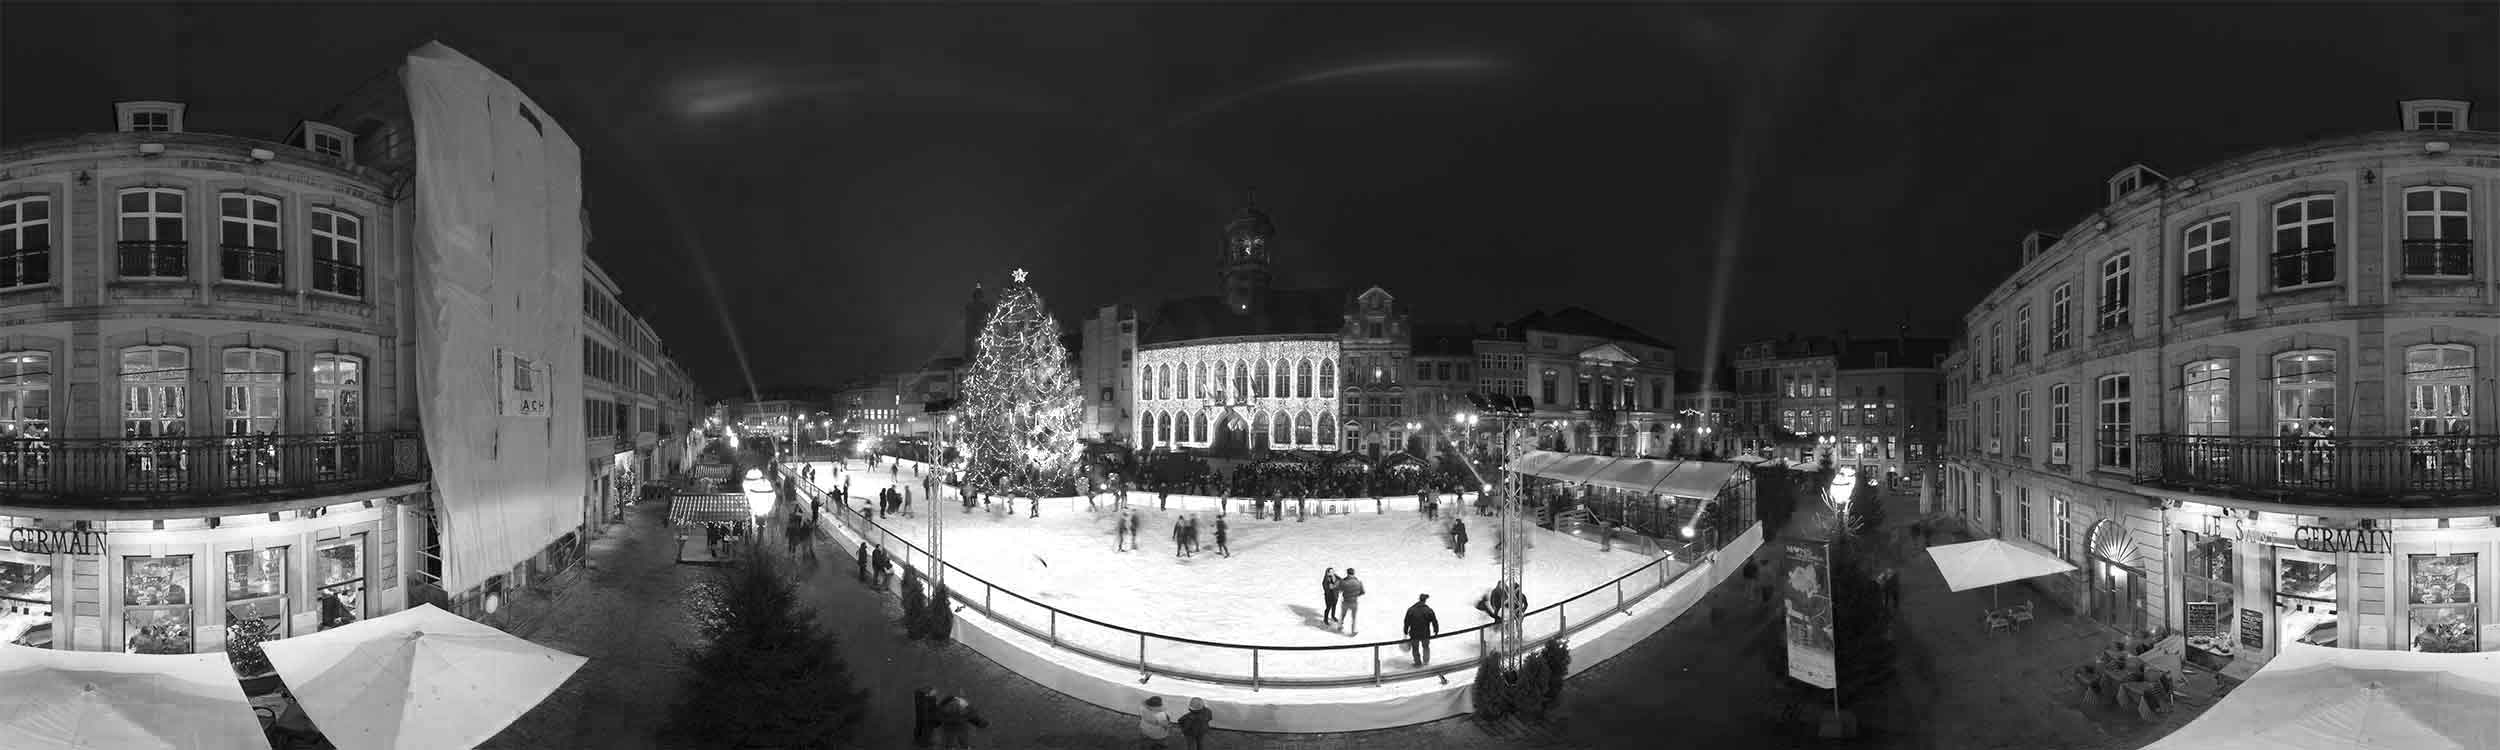 Mons coeur en neige visite virtuelle vue 360  black and white